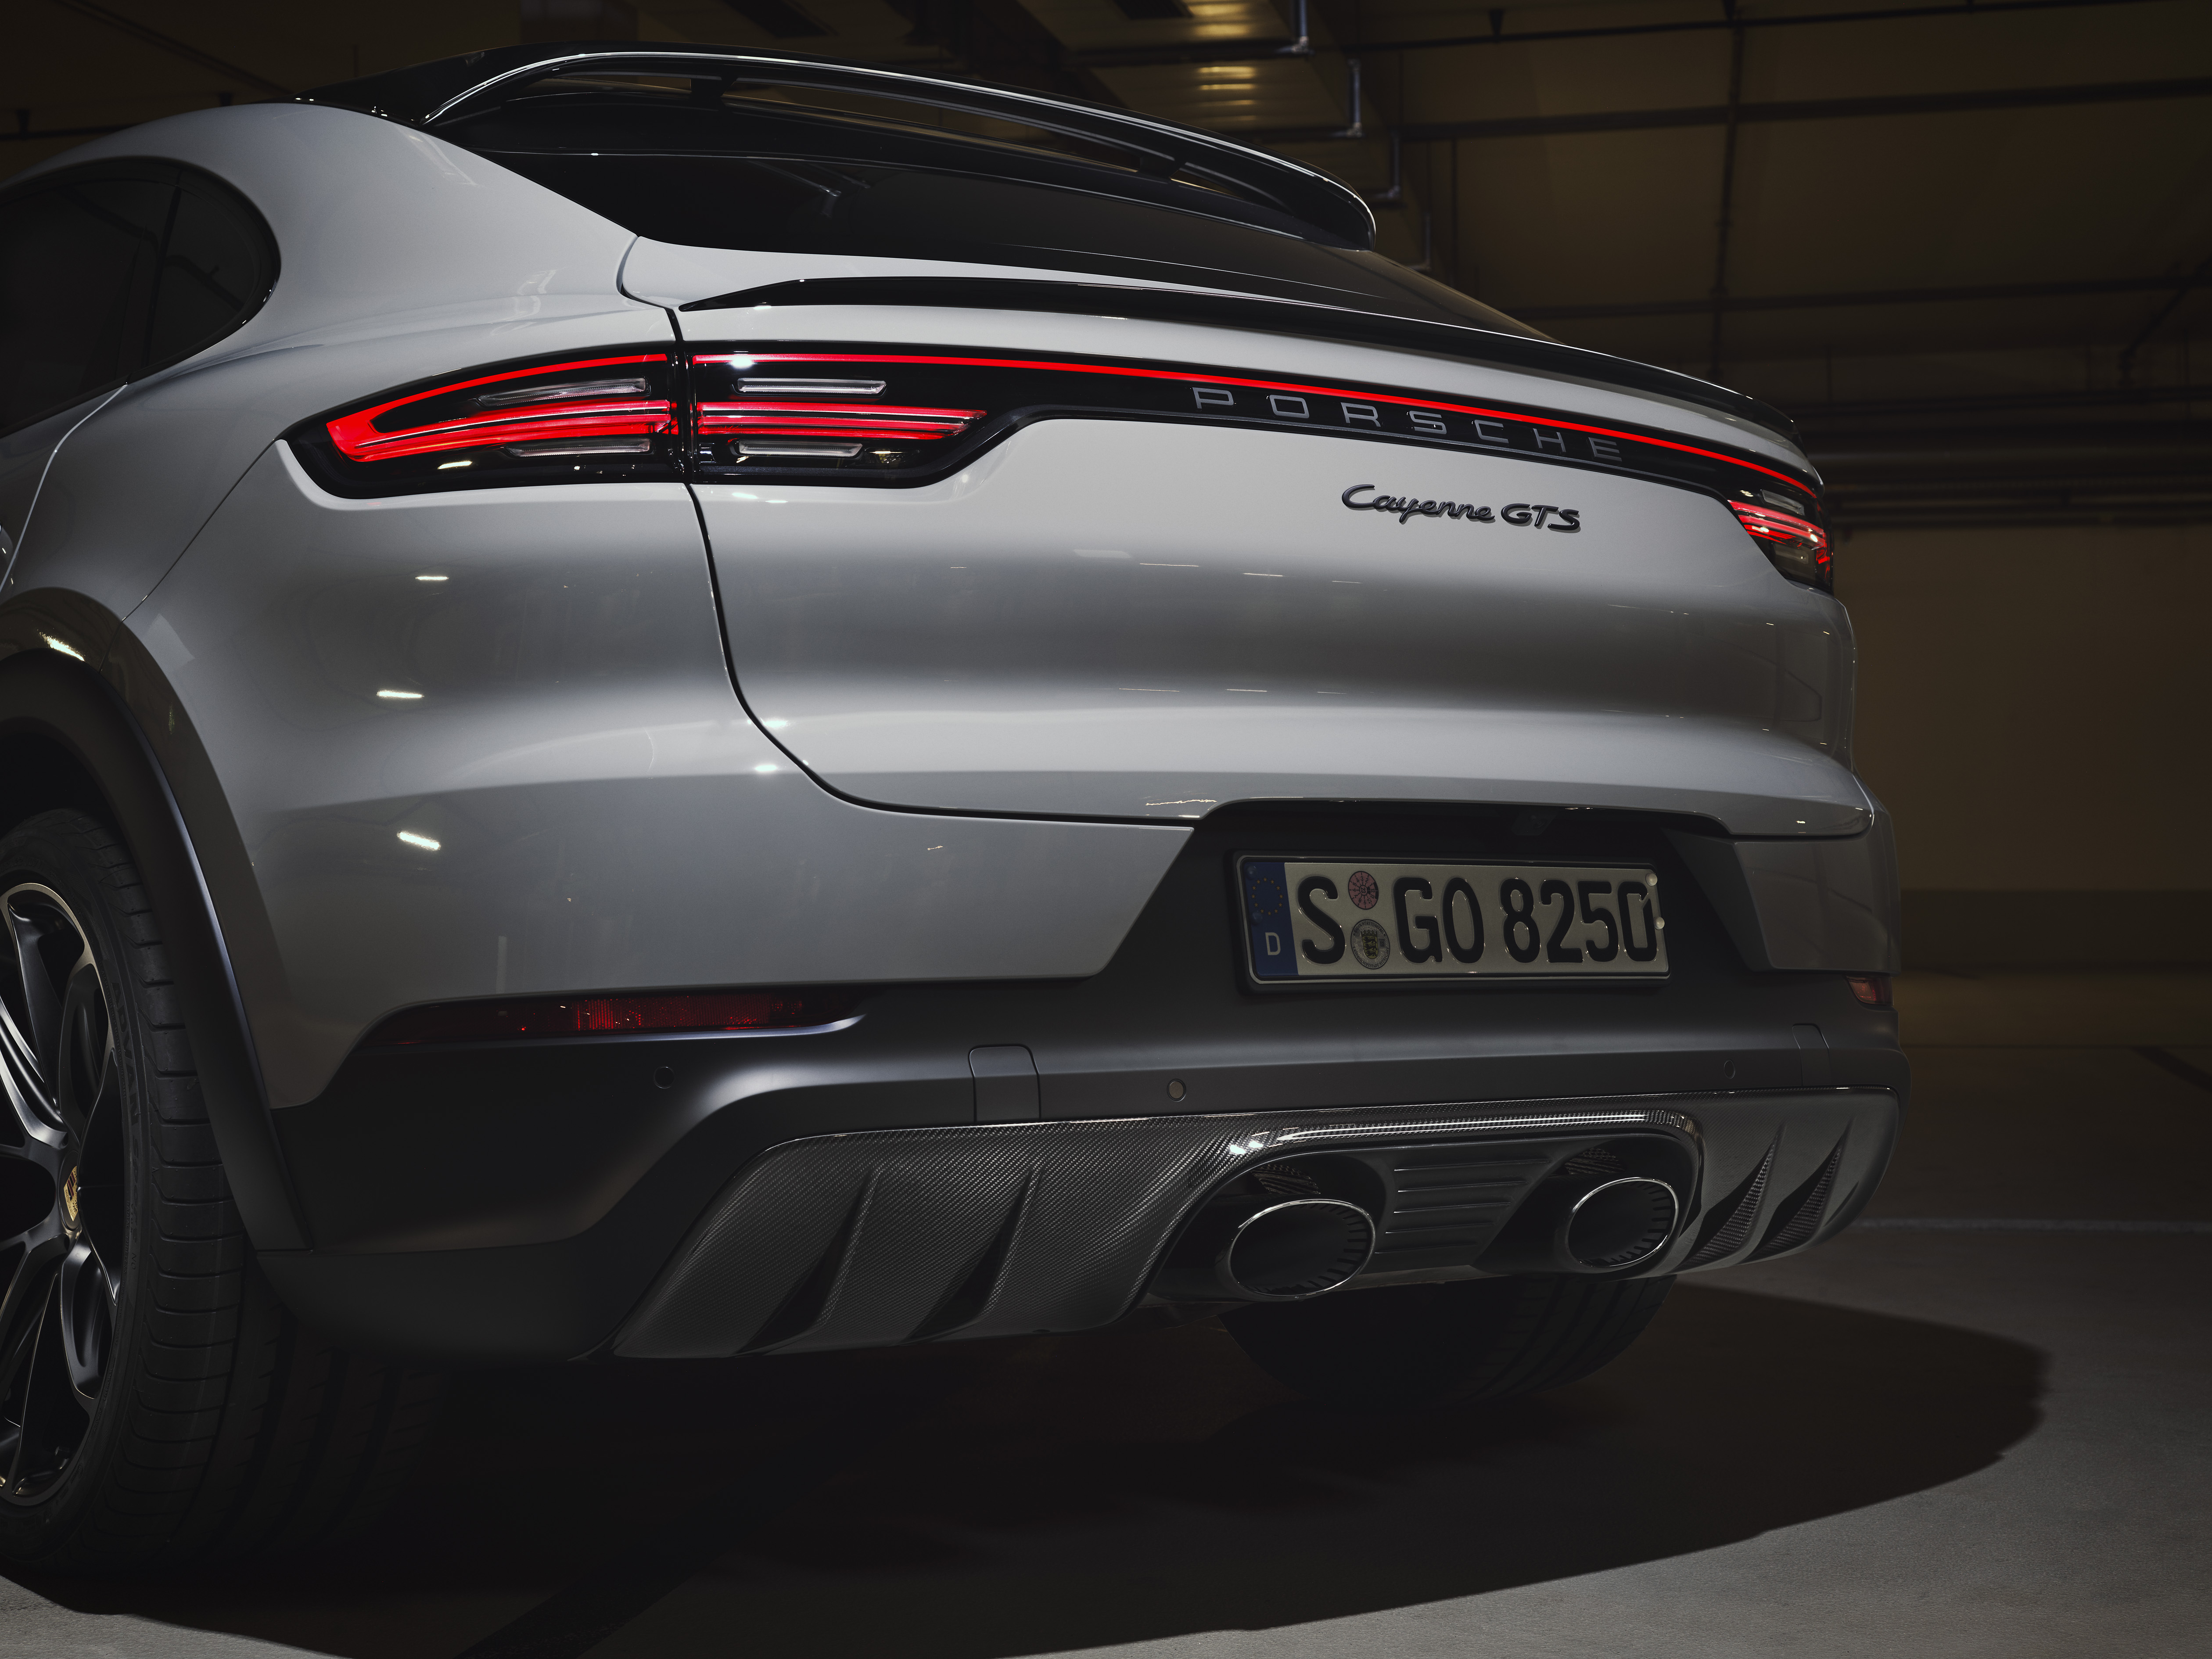 2021 Porsche Cayenne Model Rumors